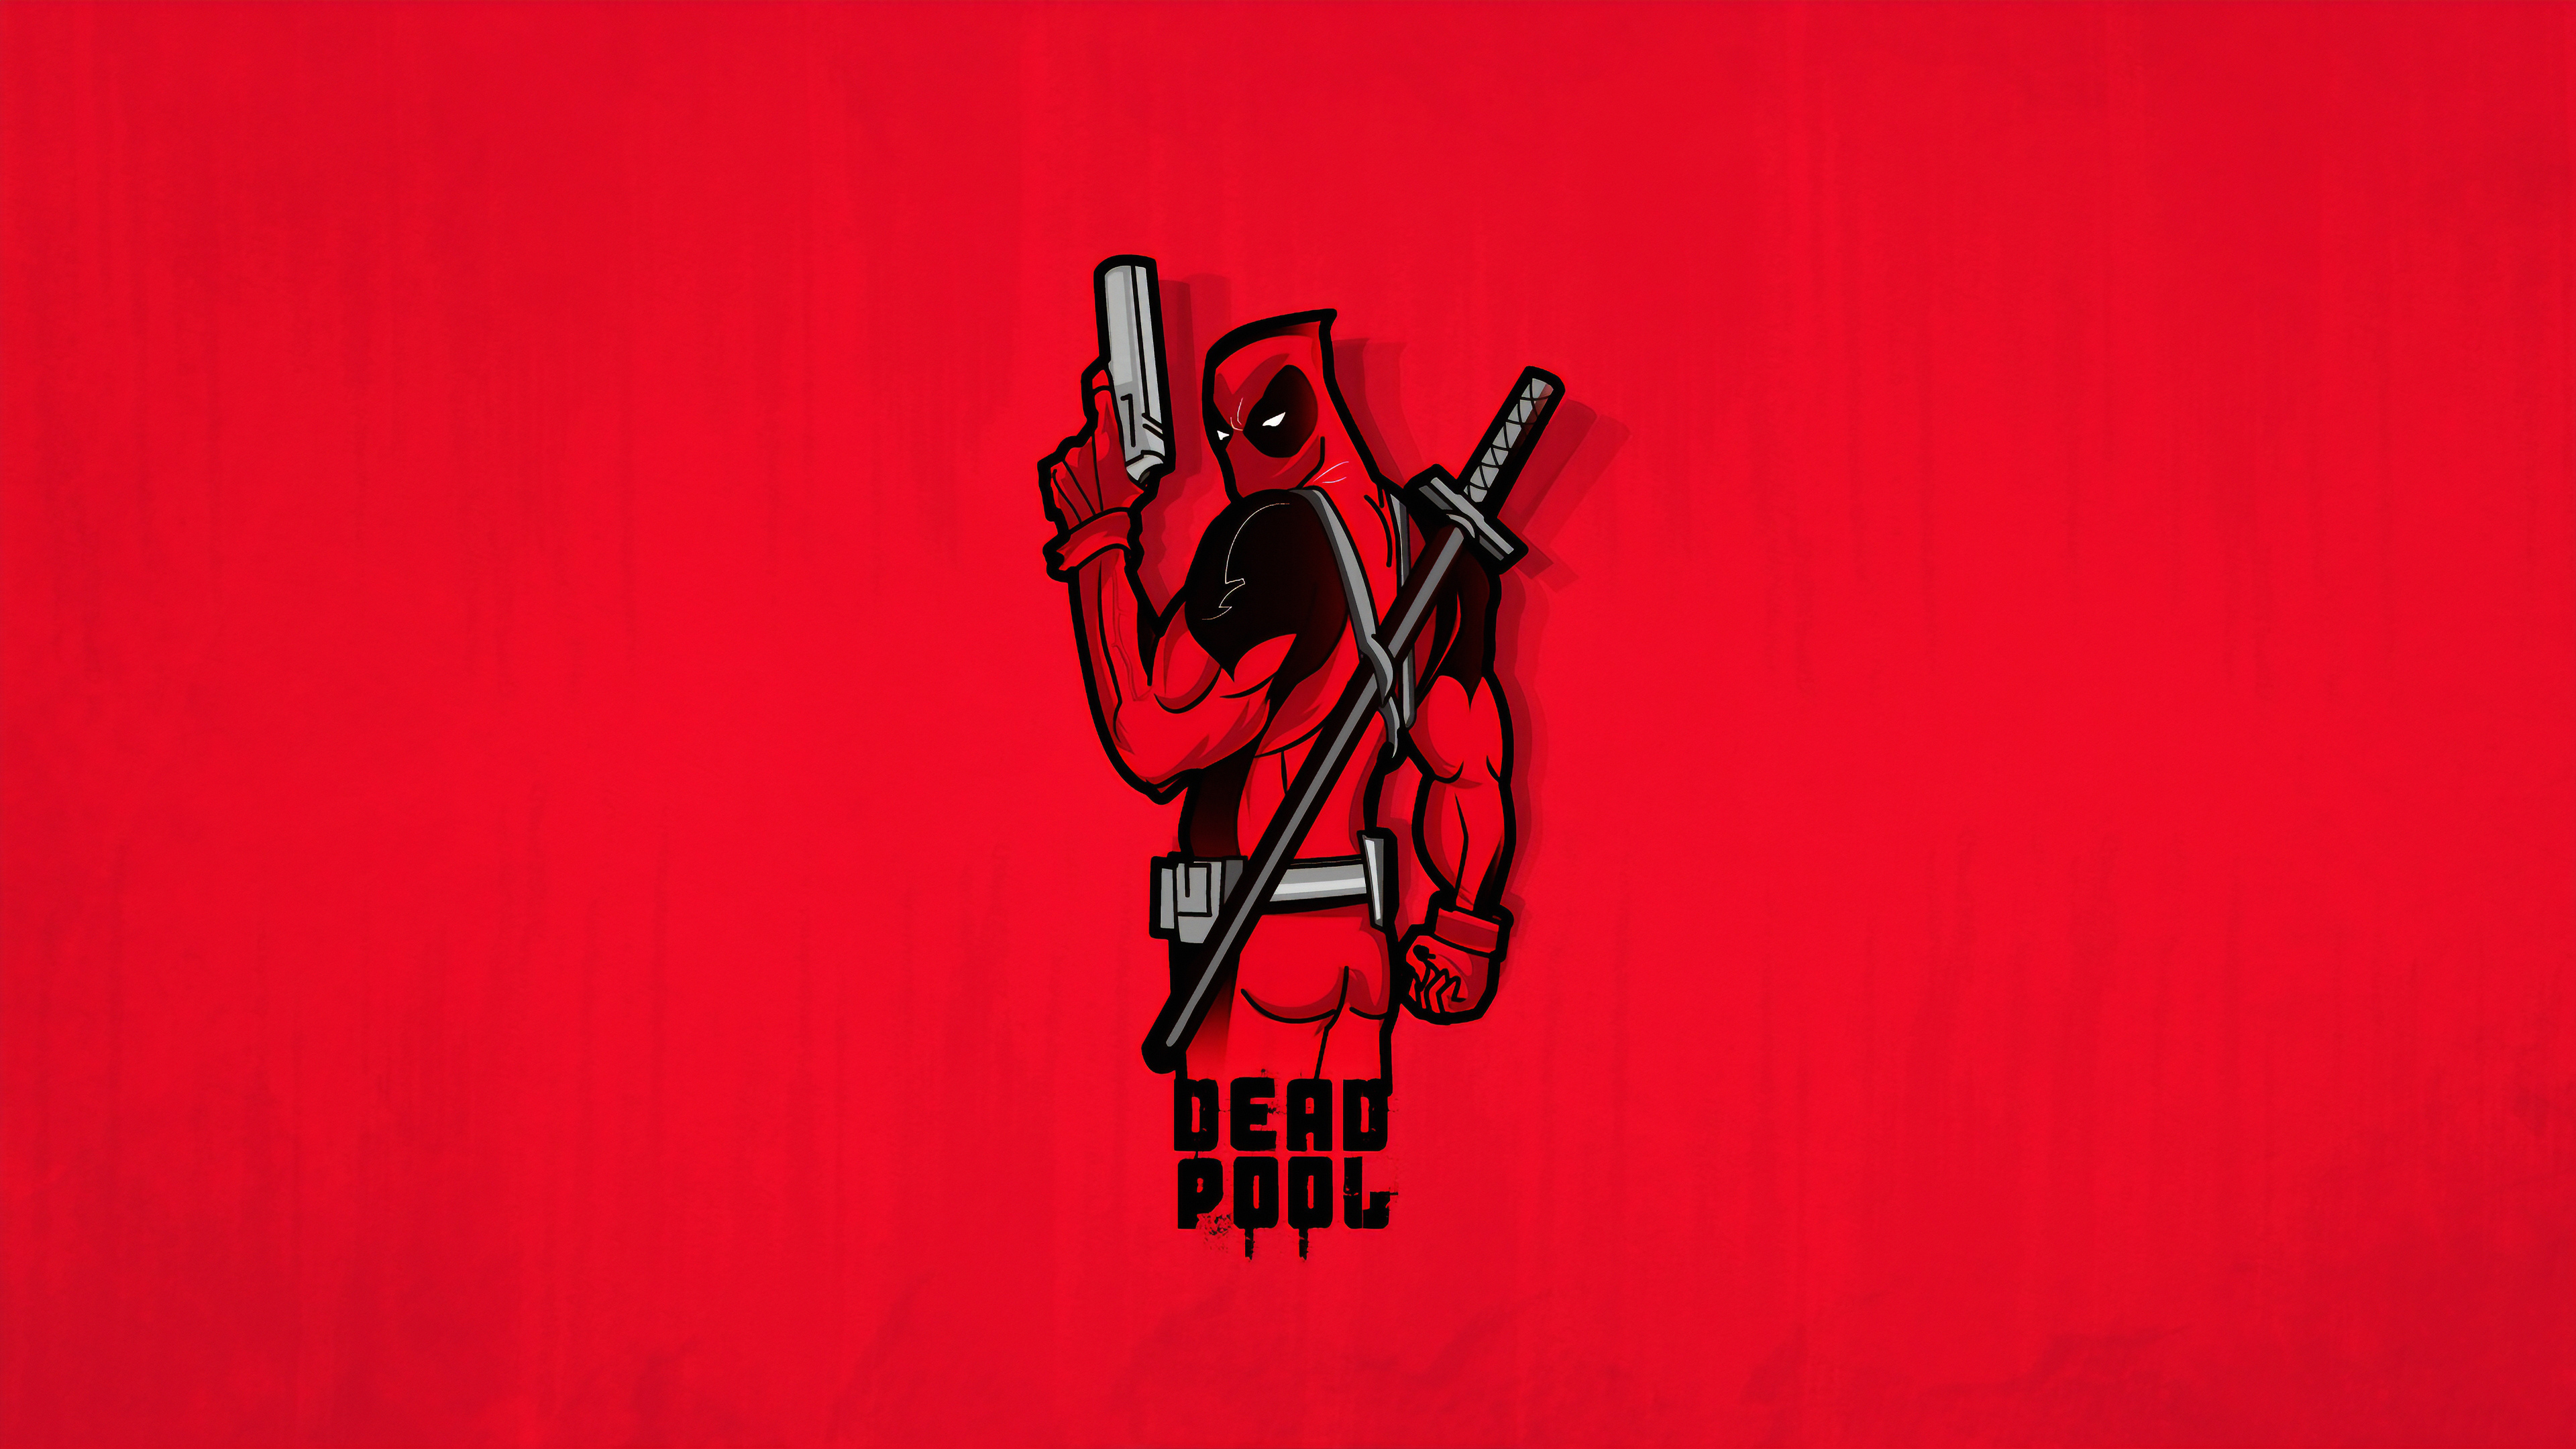 deadpool butt.jpg